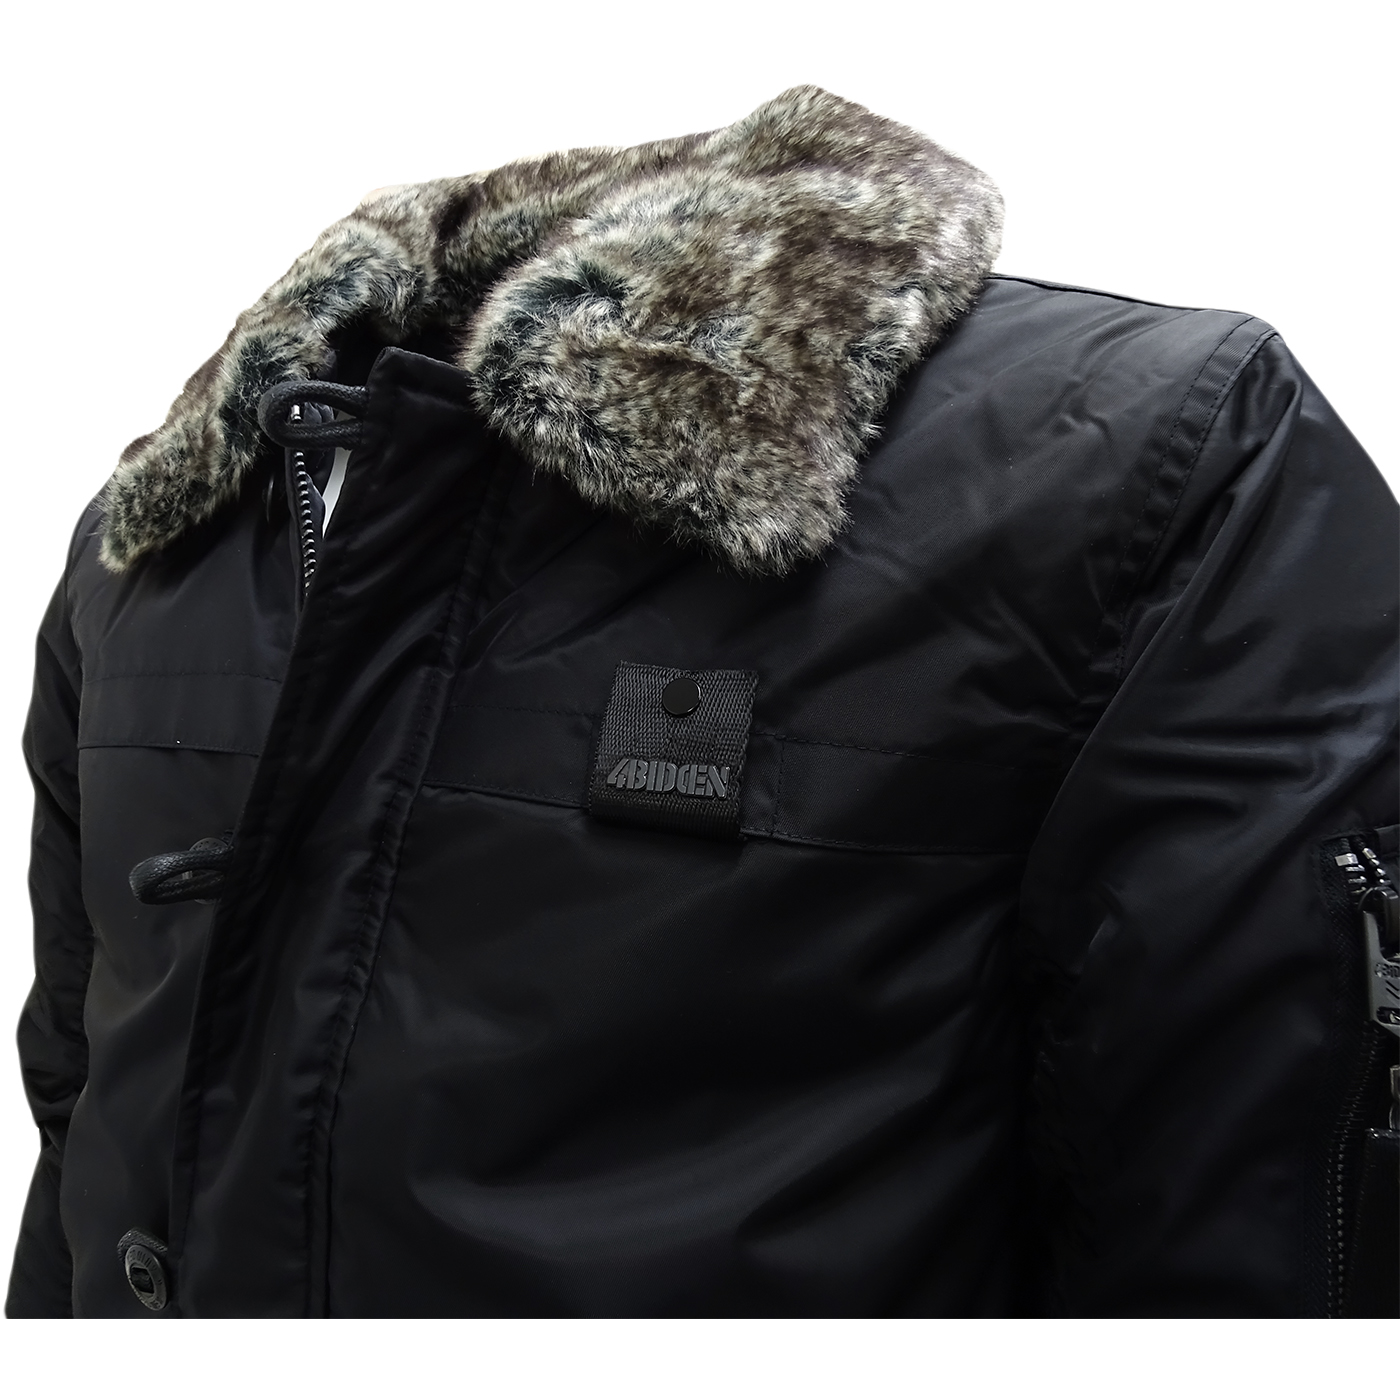 4Bidden Ma2 Flight Jacket / Outerwear Coat - Ambush Ma2 | 4Bidden ...